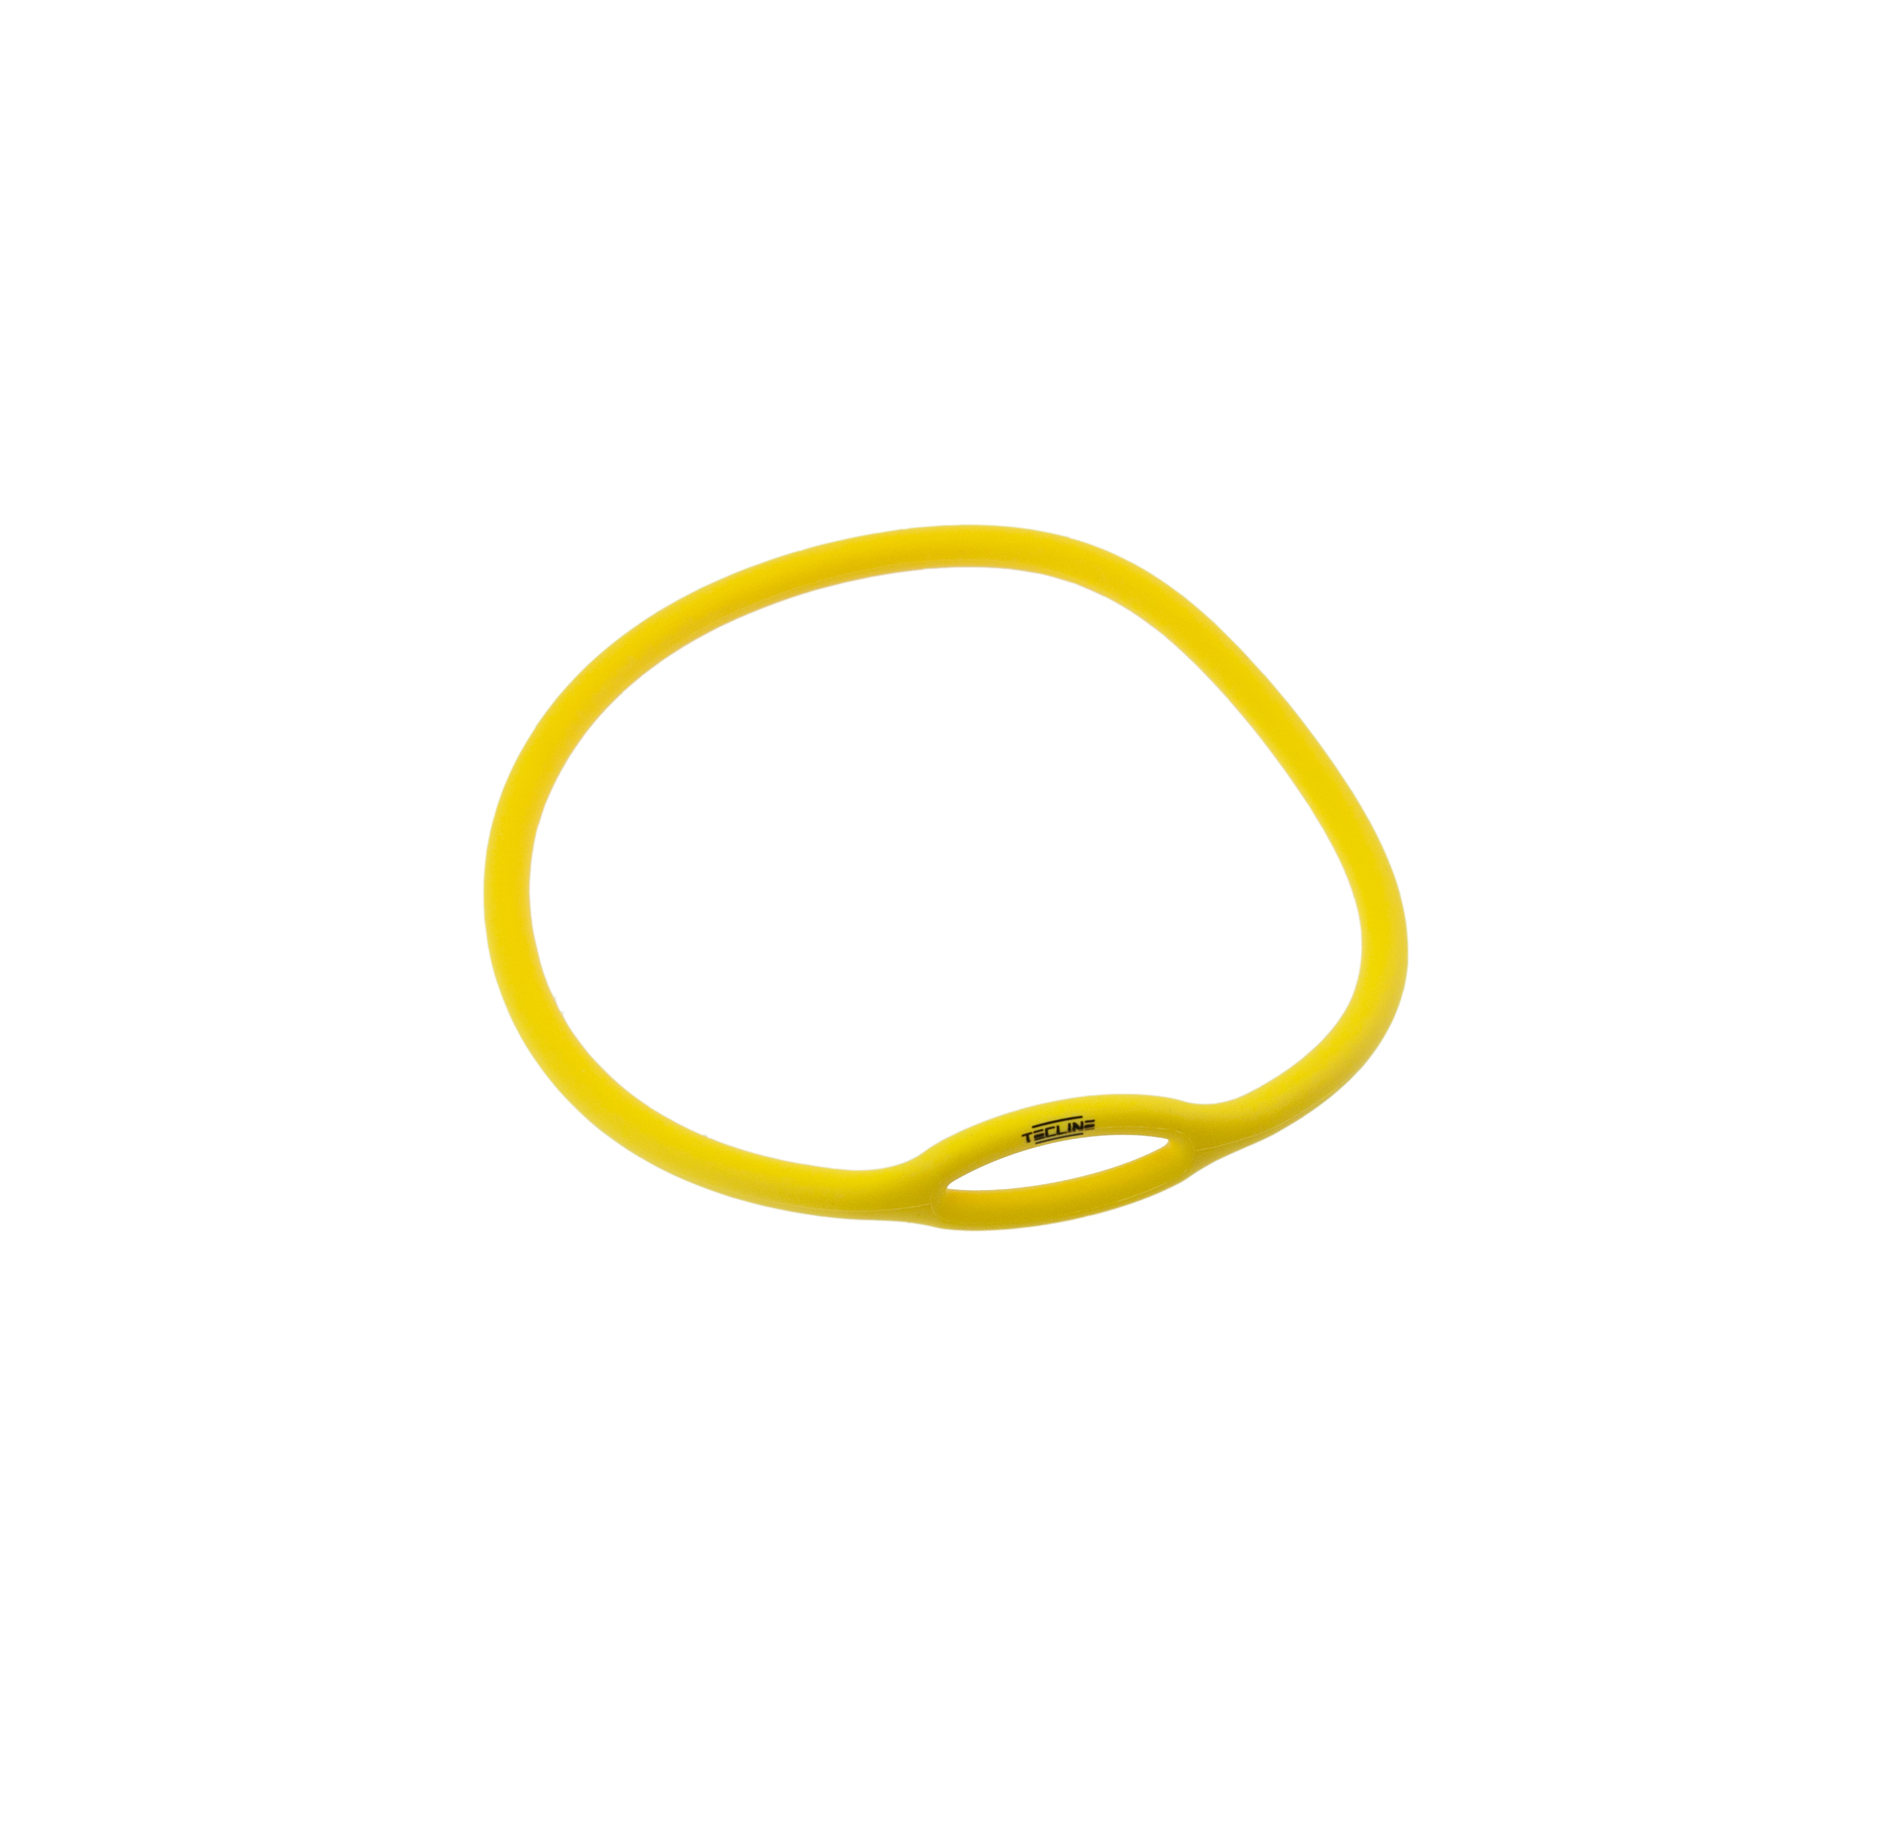 Bungee for II-st M (62 cm), yellow